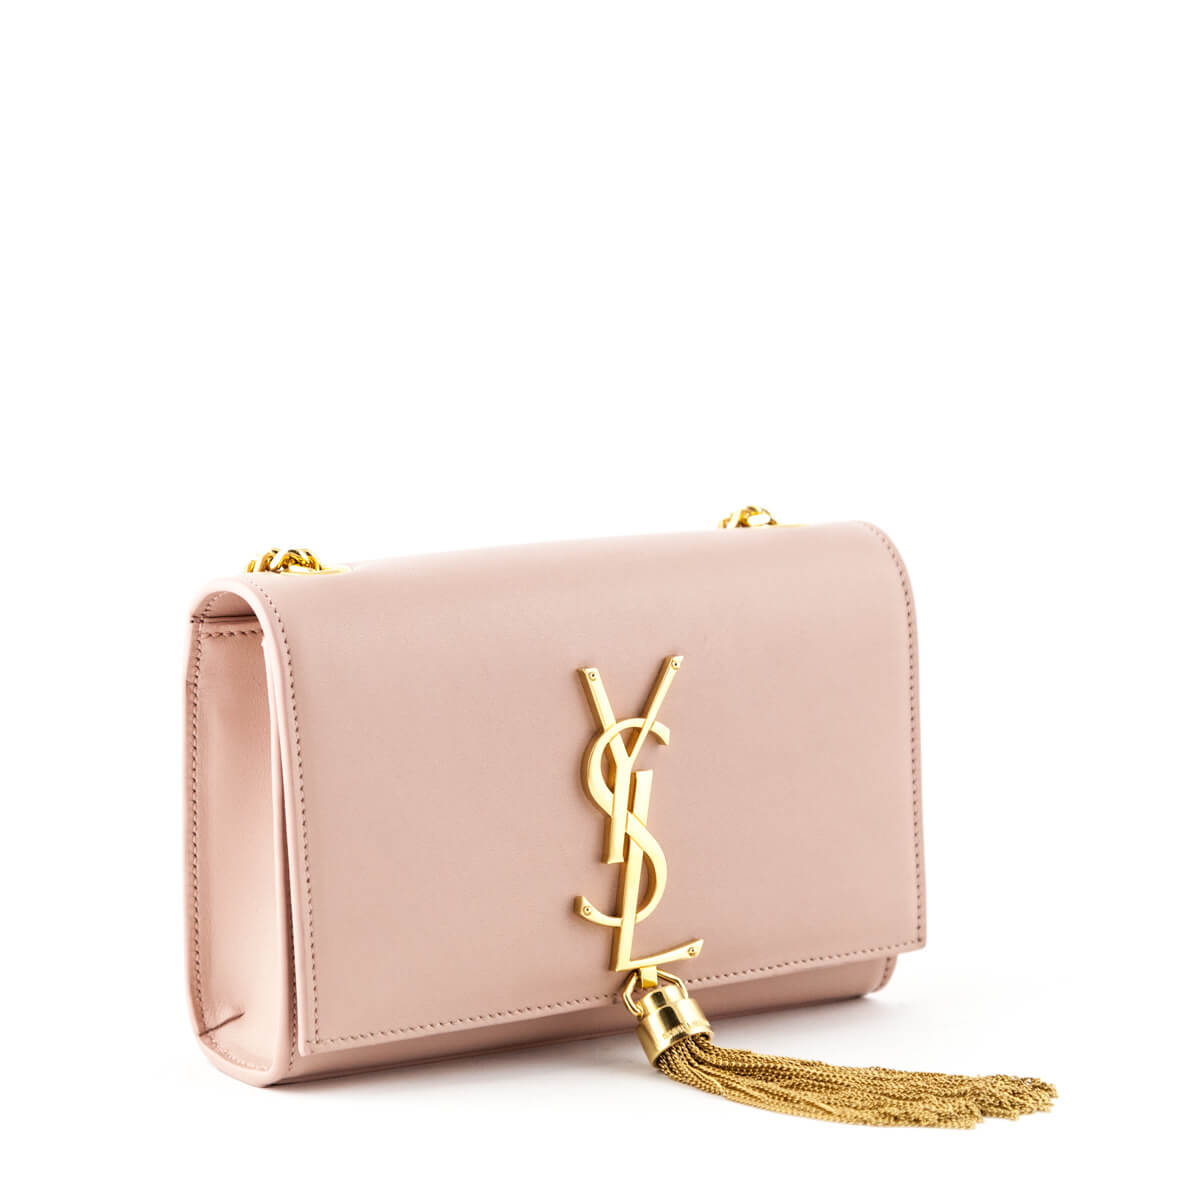 5f384d9b1537 ... Saint Laurent Pink Smooth Calfskin Small Tassel Kate bag - LOVE that BAG  - Preowned Authentic ...